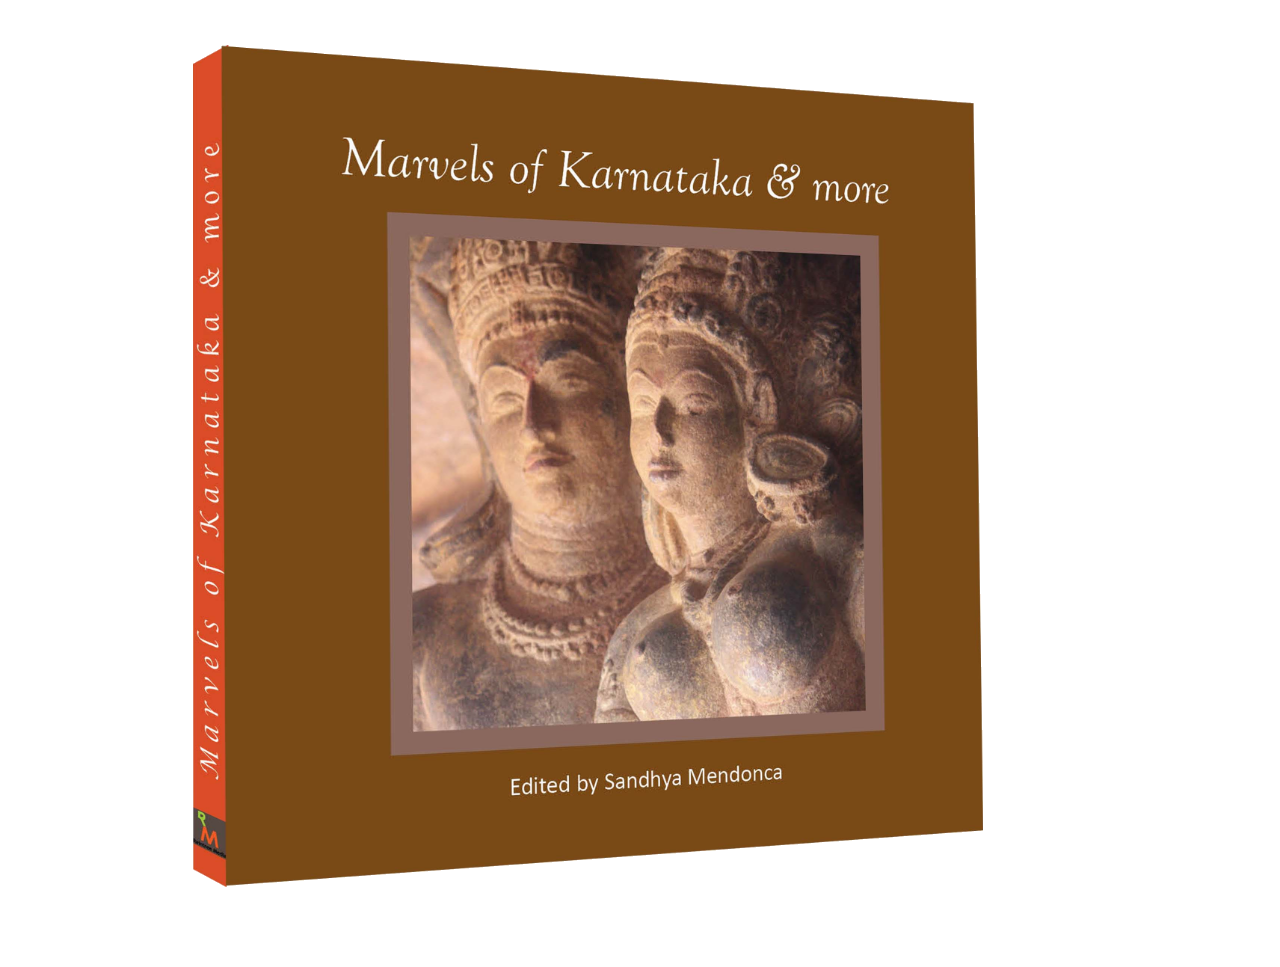 Marvels of Karnataka & more